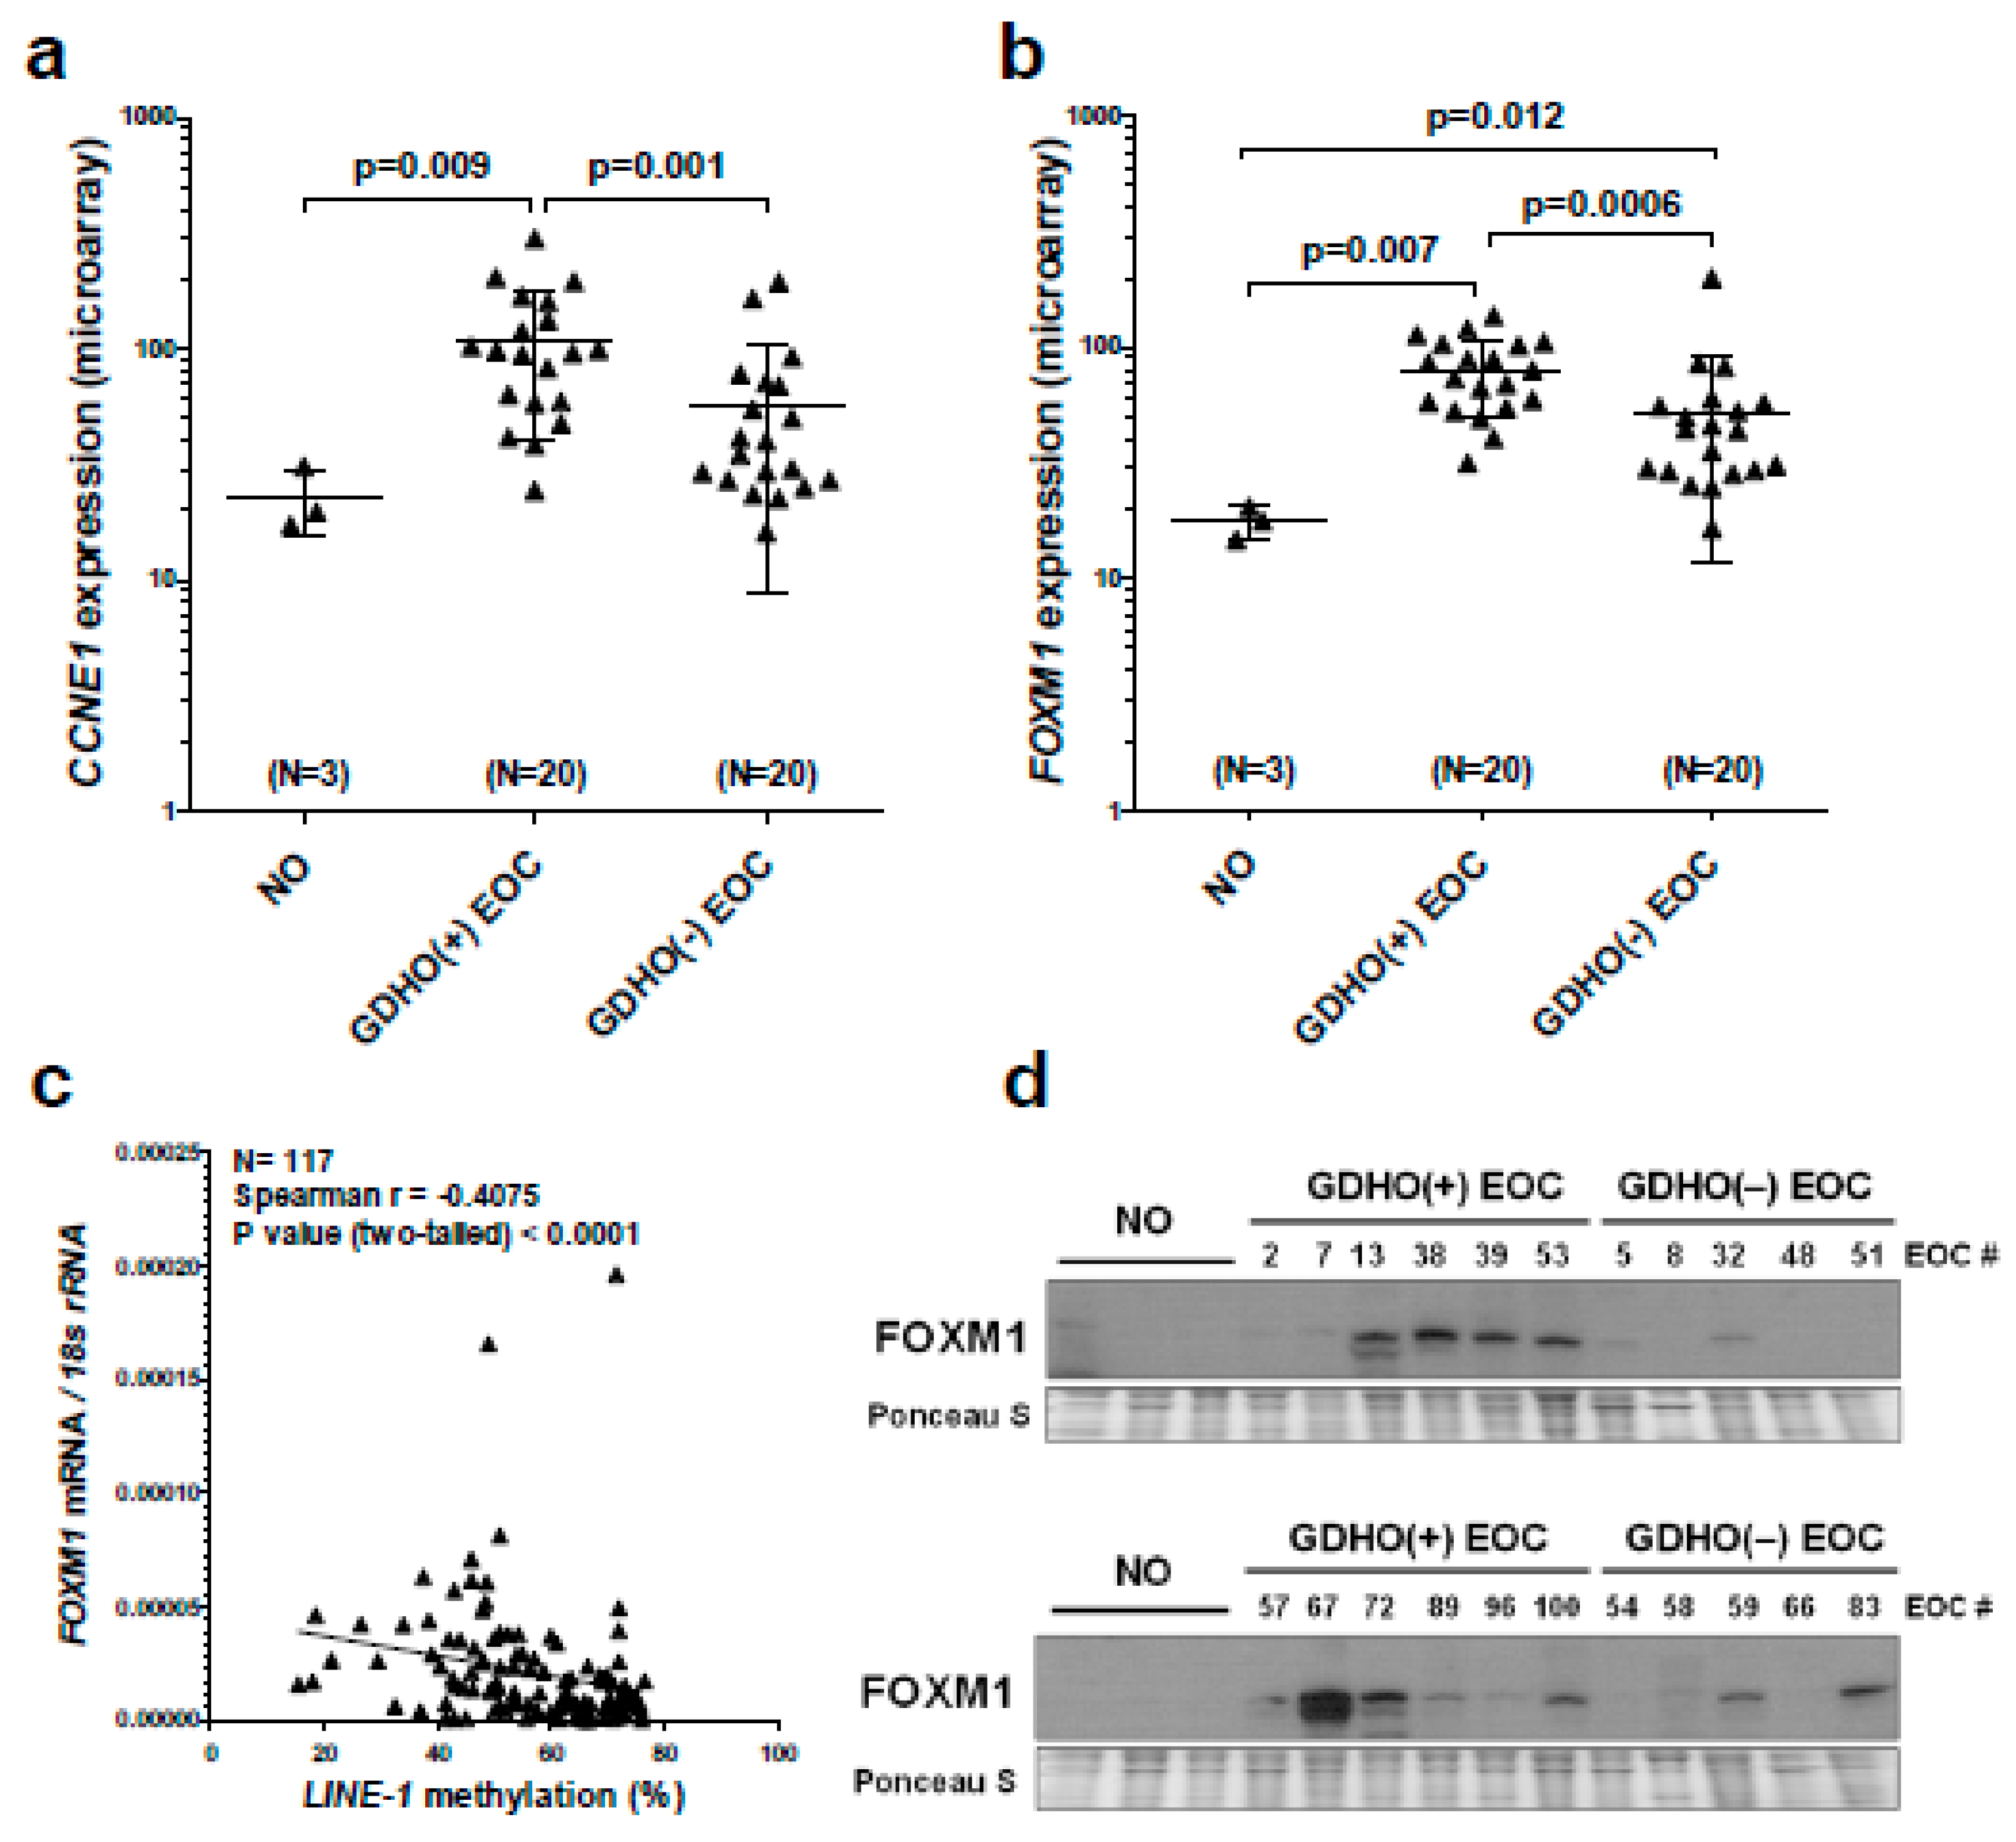 Cancers Free Full Text Global Dna Hypomethylation In Epithelial Ovarian Cancer Passive Demethylation And Association With Genomic Instability Html